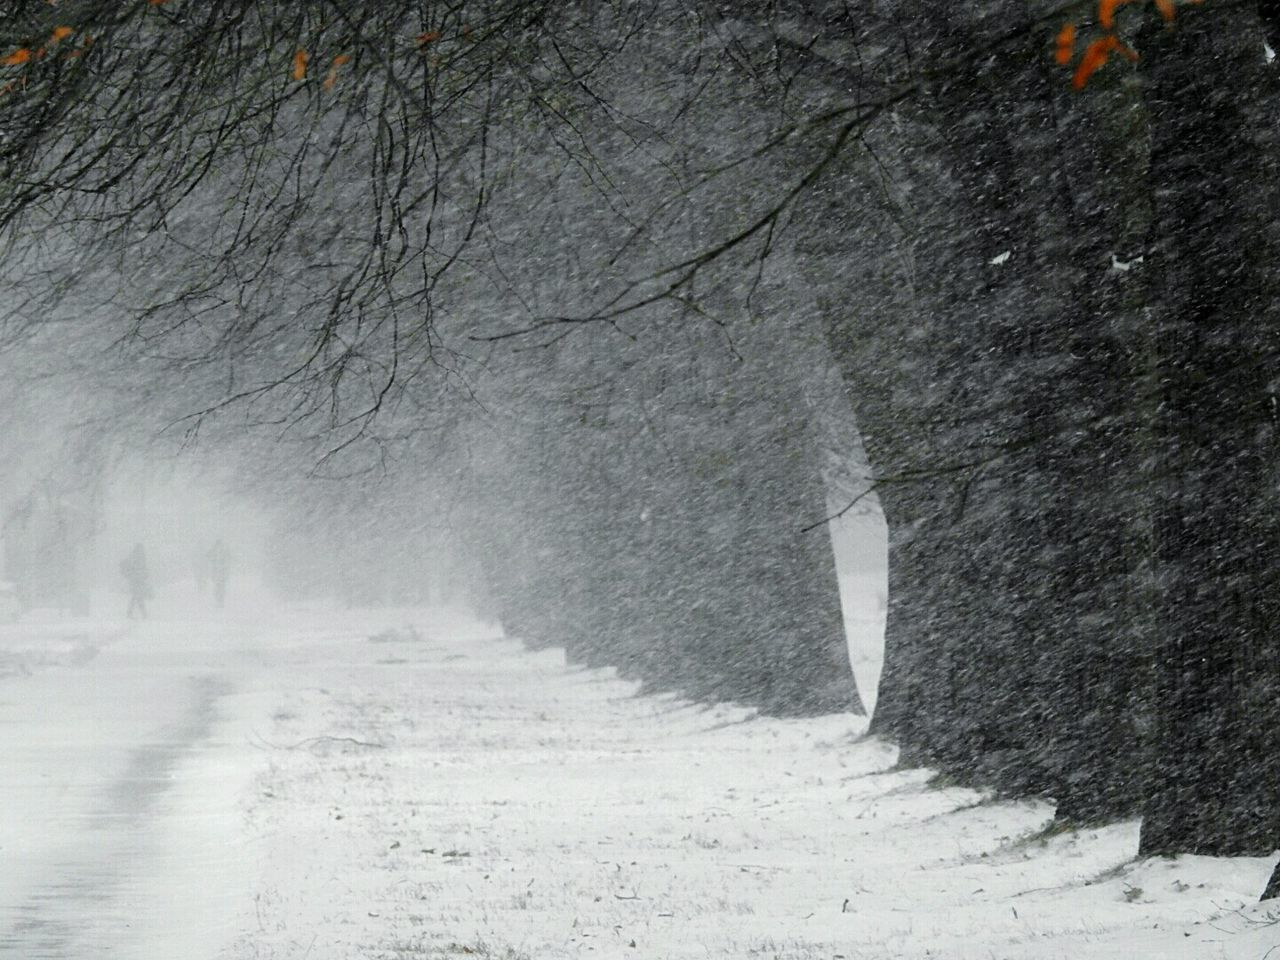 cold temperature, winter, snow, the way forward, nature, tree, weather, tranquility, outdoors, no people, snowing, beauty in nature, landscape, day, road, scenics, bare tree